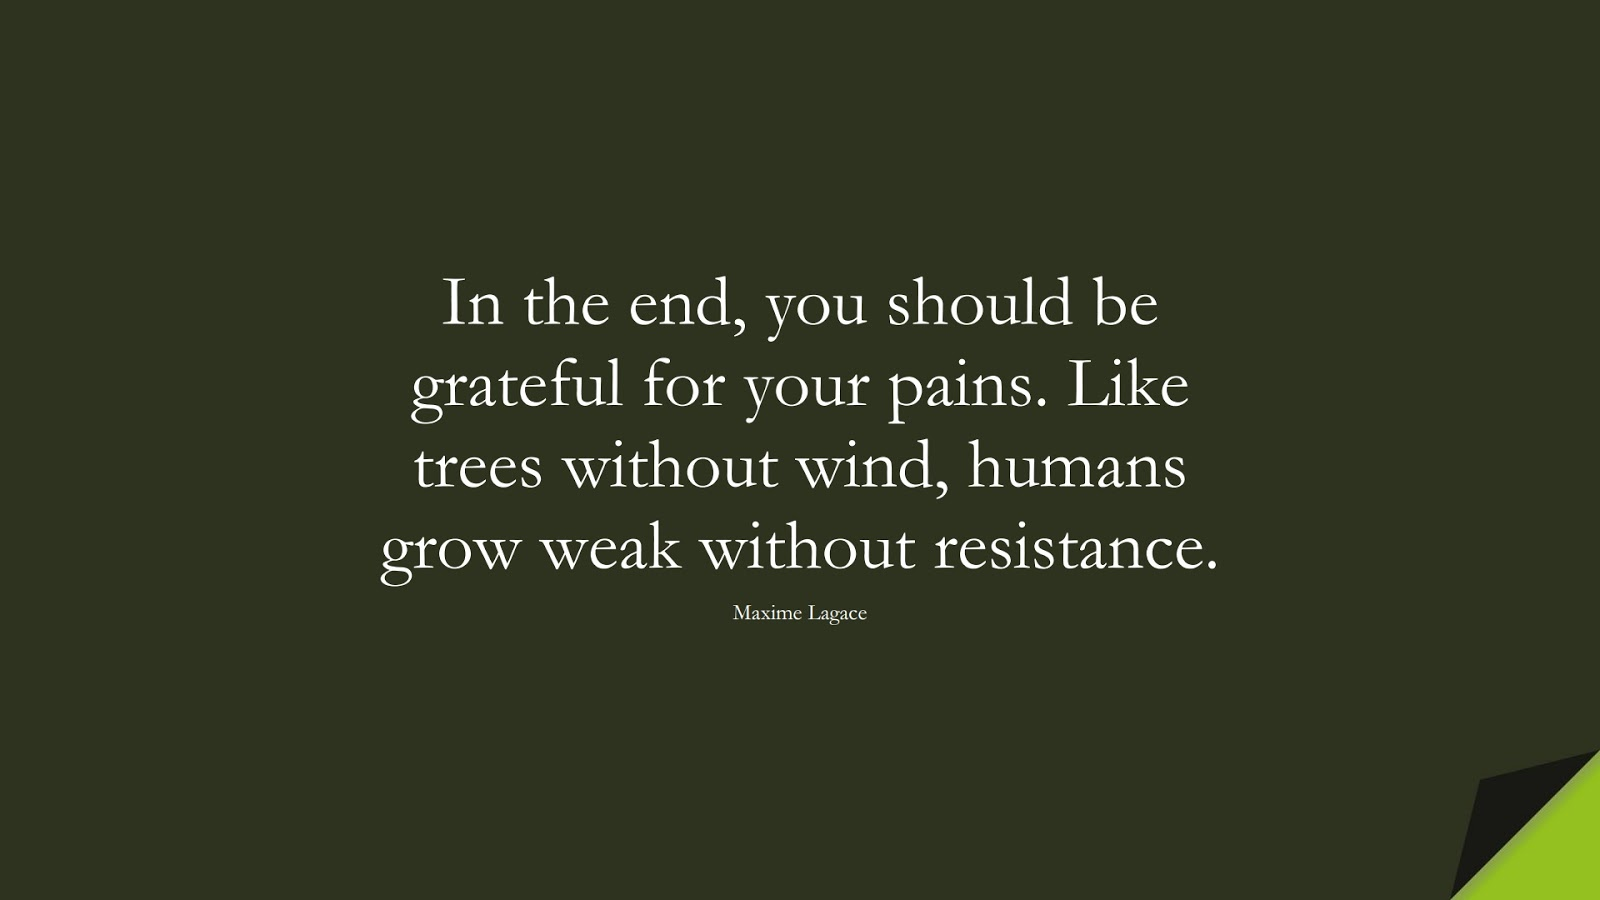 In the end, you should be grateful for your pains. Like trees without wind, humans grow weak without resistance. (Maxime Lagace);  #HappinessQuotes